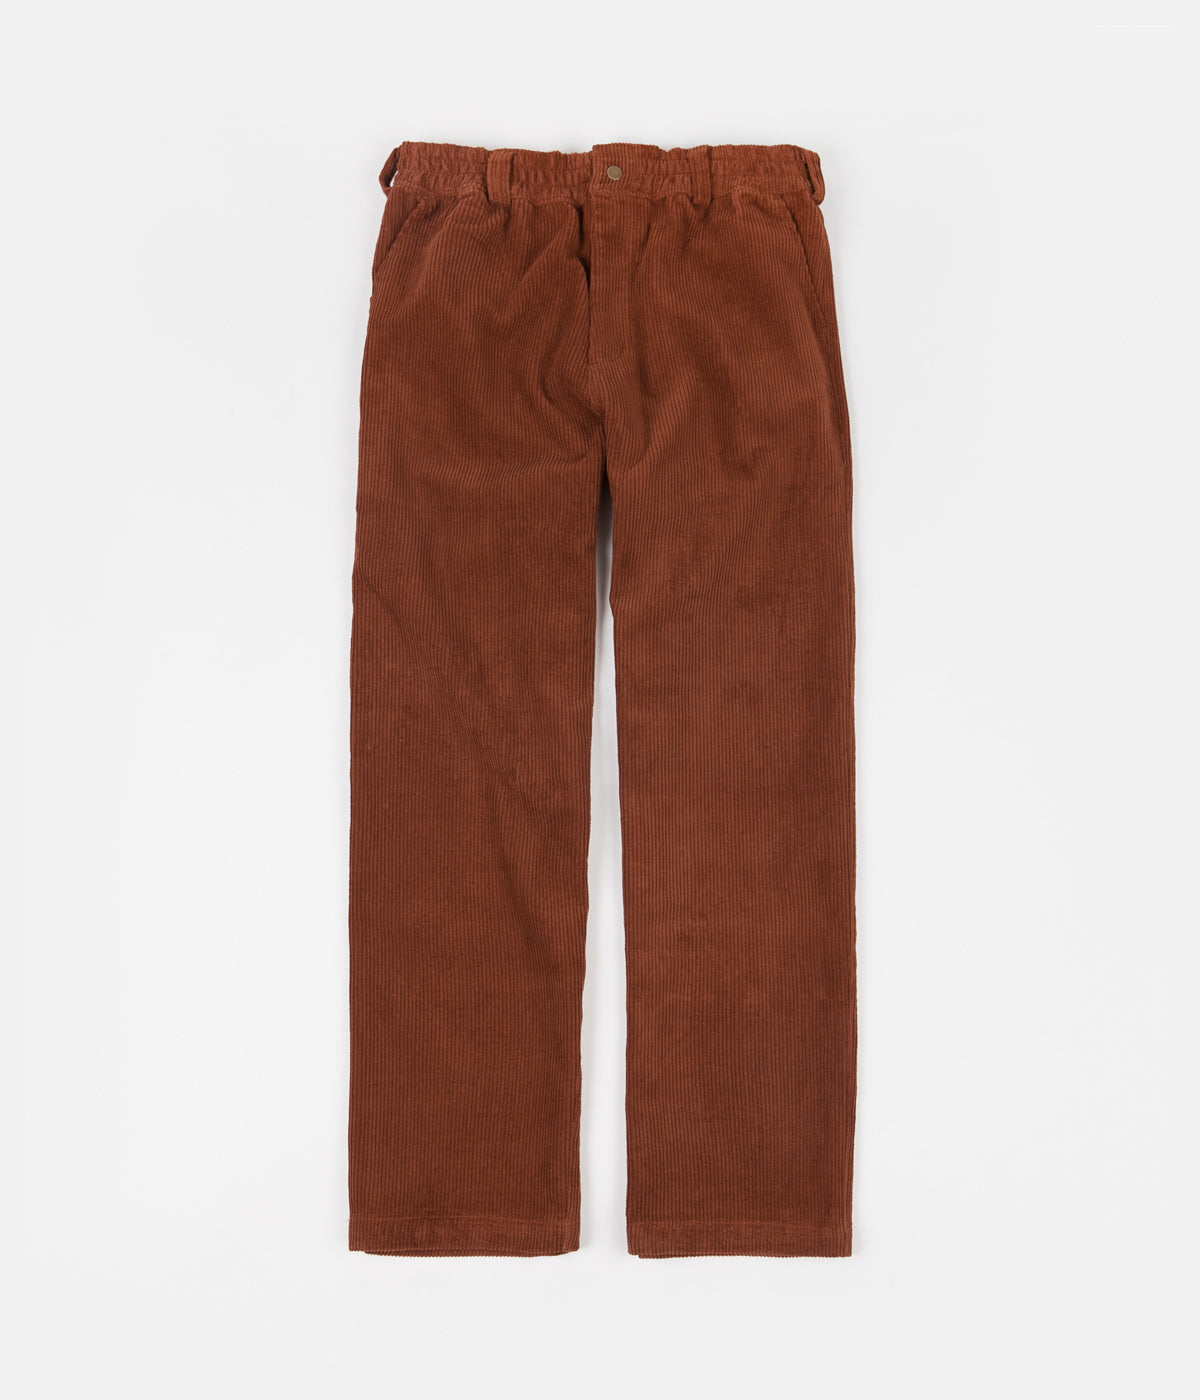 Butter Goods High Wale Corduroy Pants - Rust